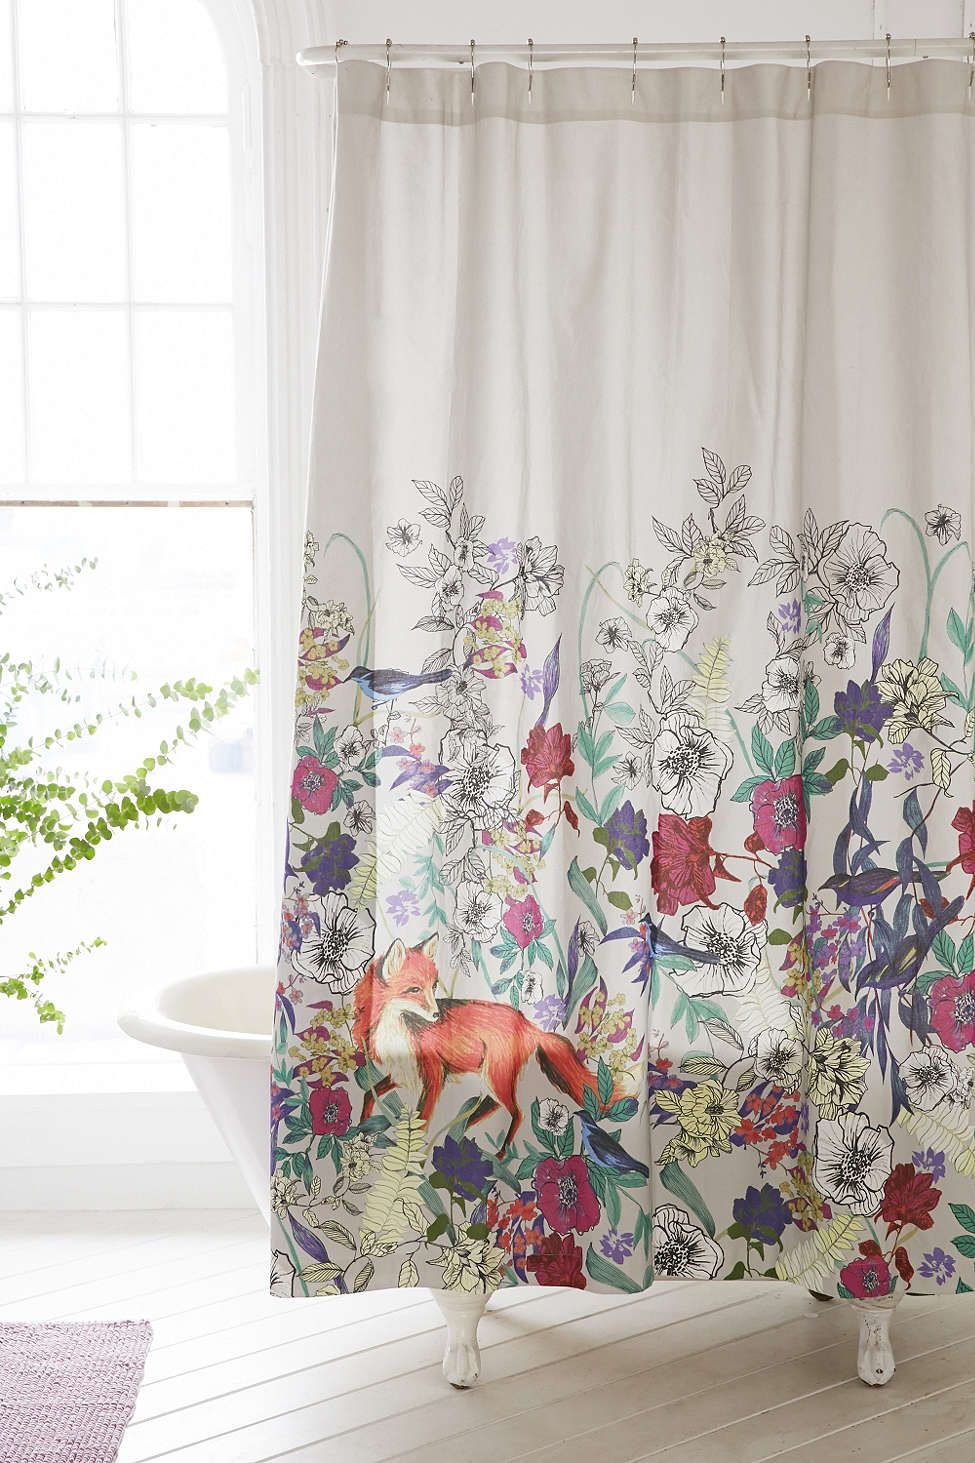 Plum Bow Forest Critters Shower Curtain Simple Apartment Decor